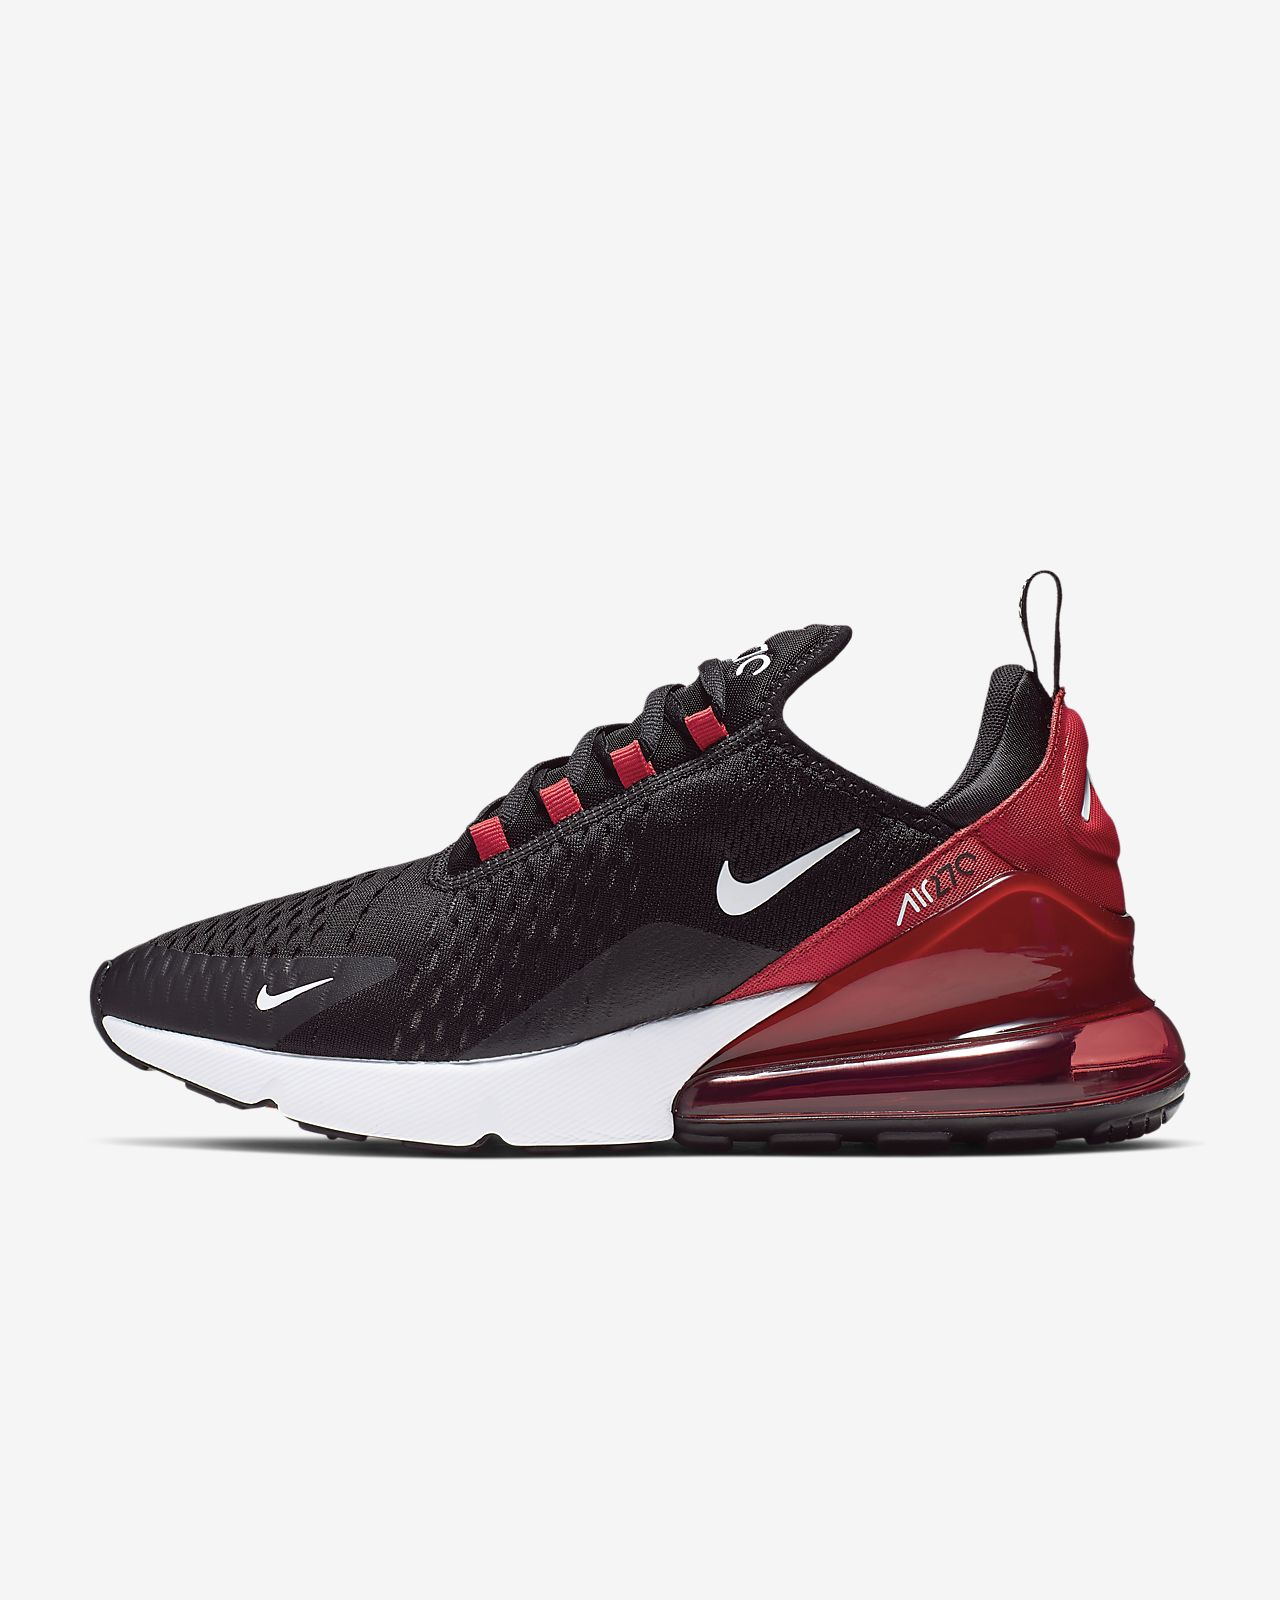 lowest price edfbc 717f3 ... Nike Air Max 270 Men s Shoe